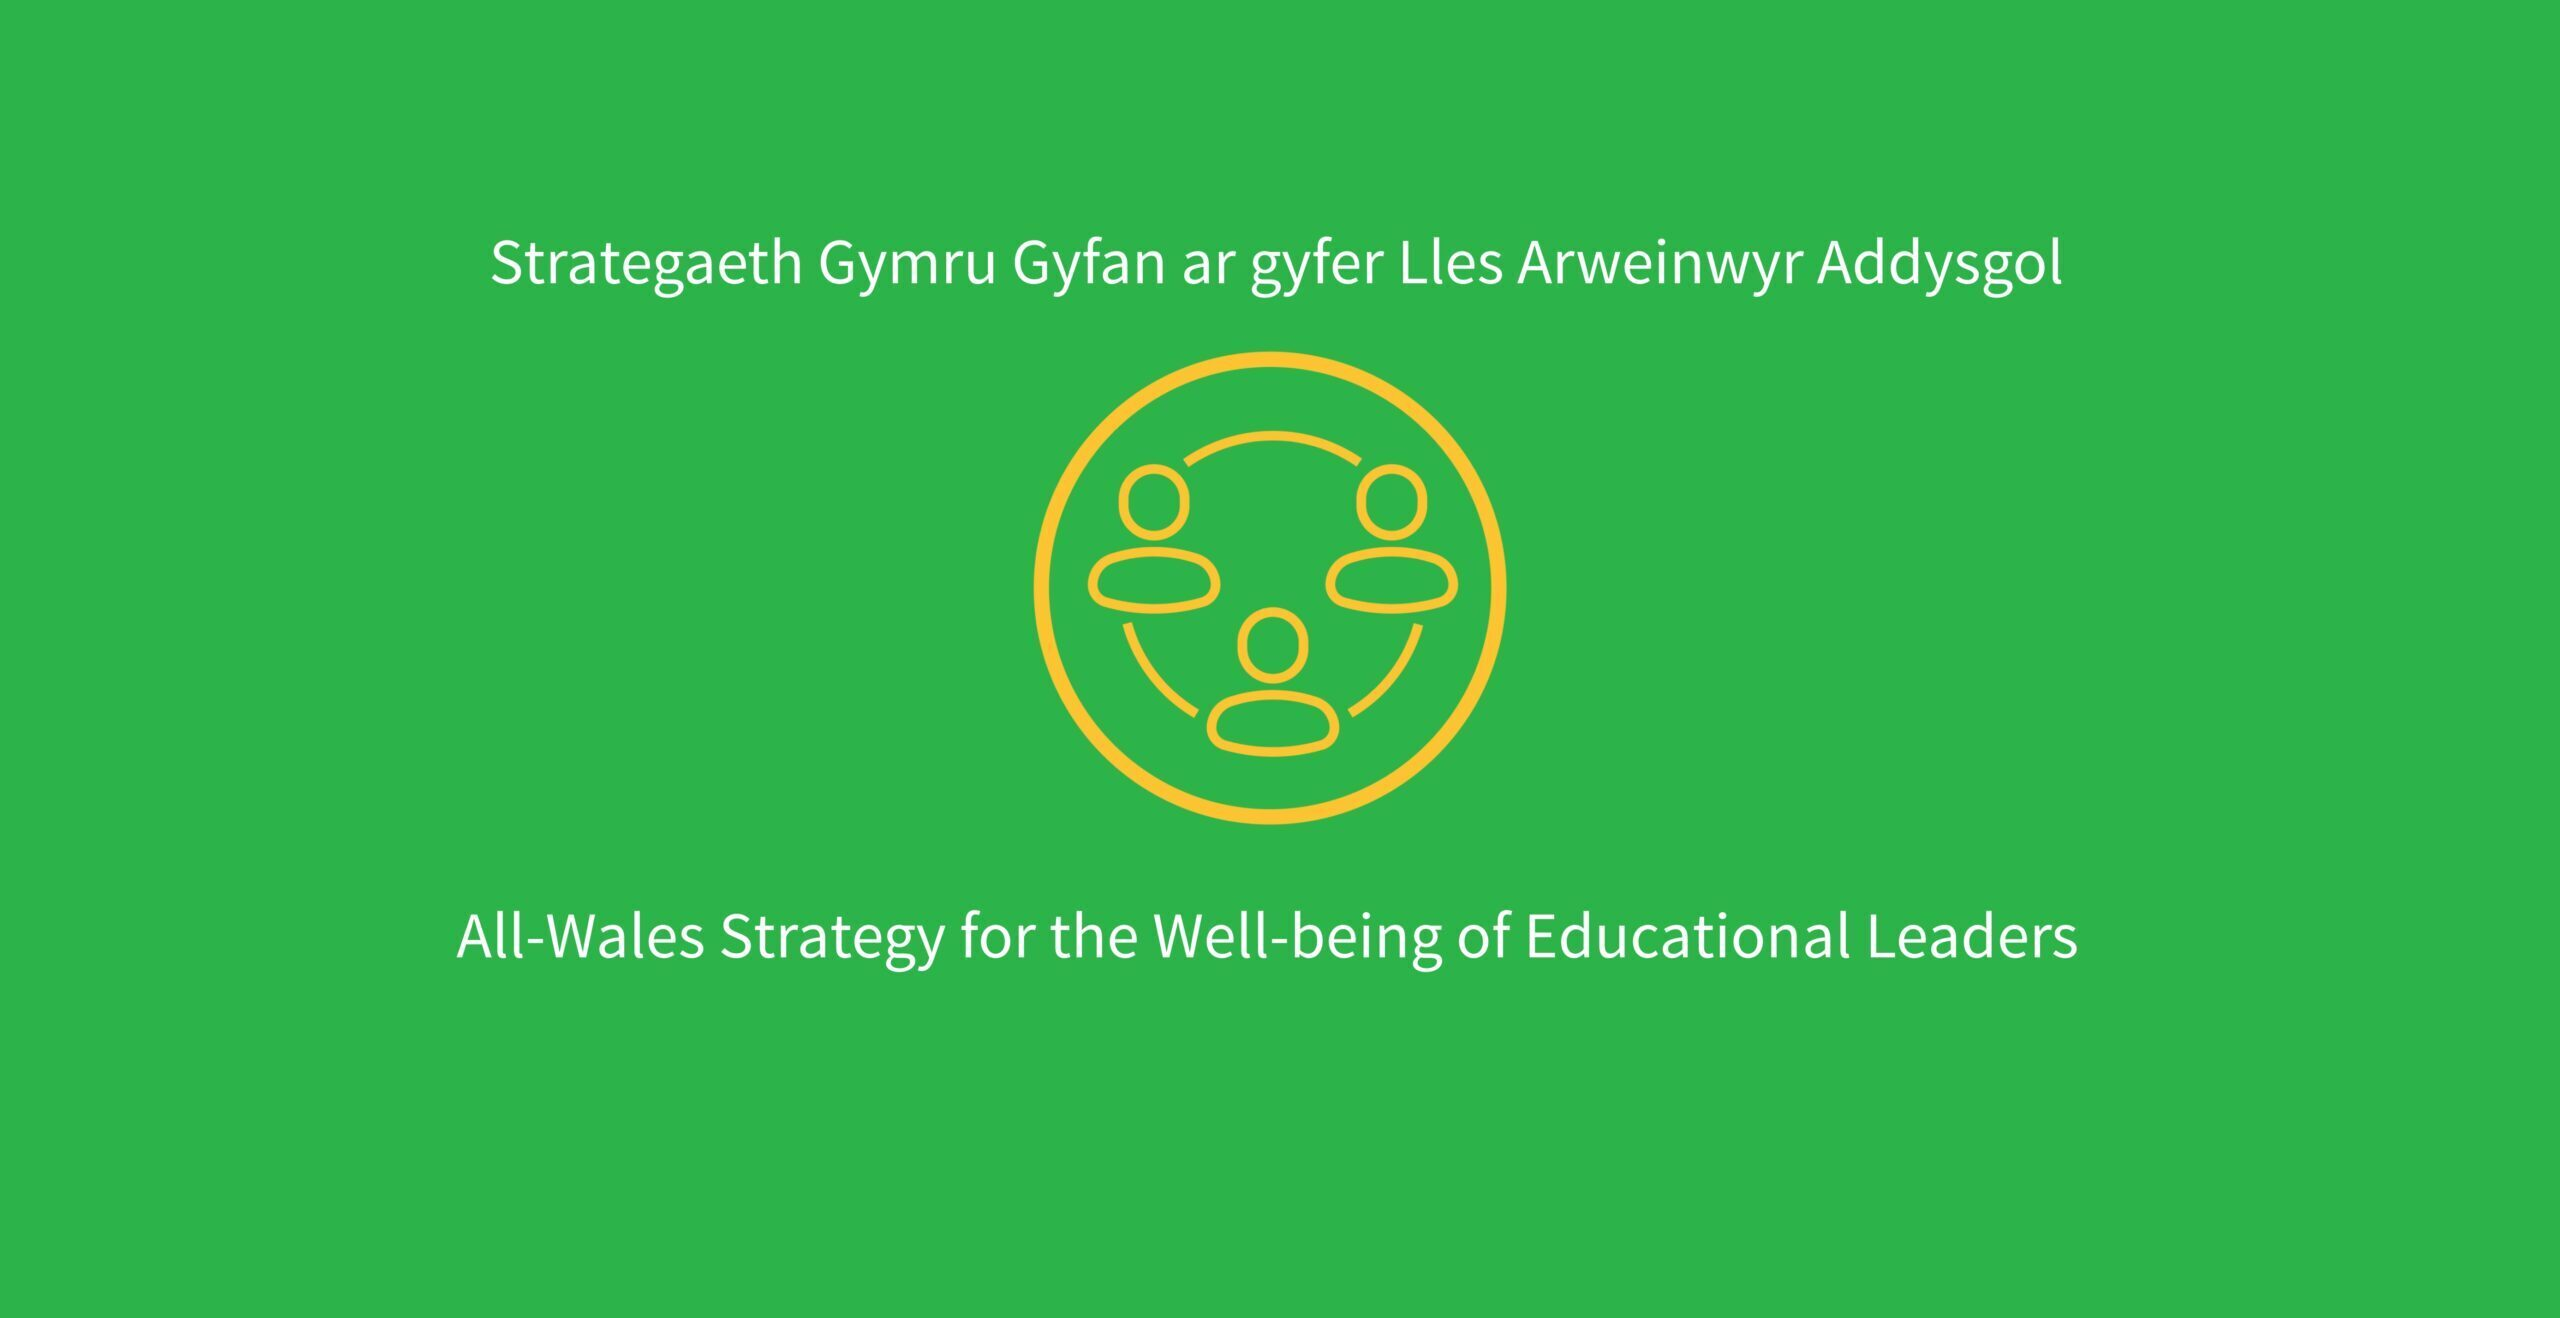 All-Wales Strategy for the Well-being of Educational Leaders